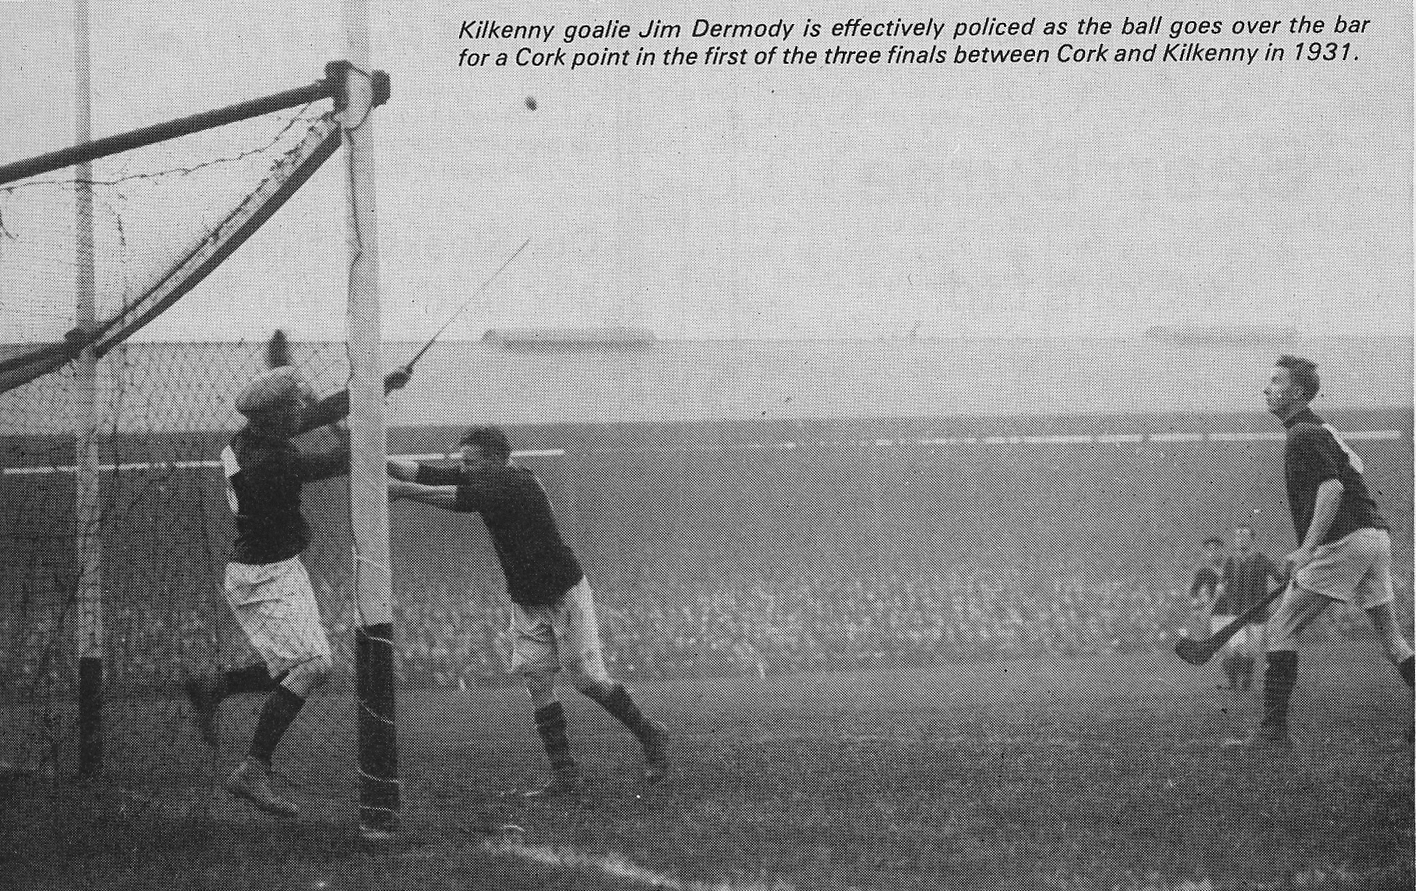 A Cork point from the first of the three deciders in 1931